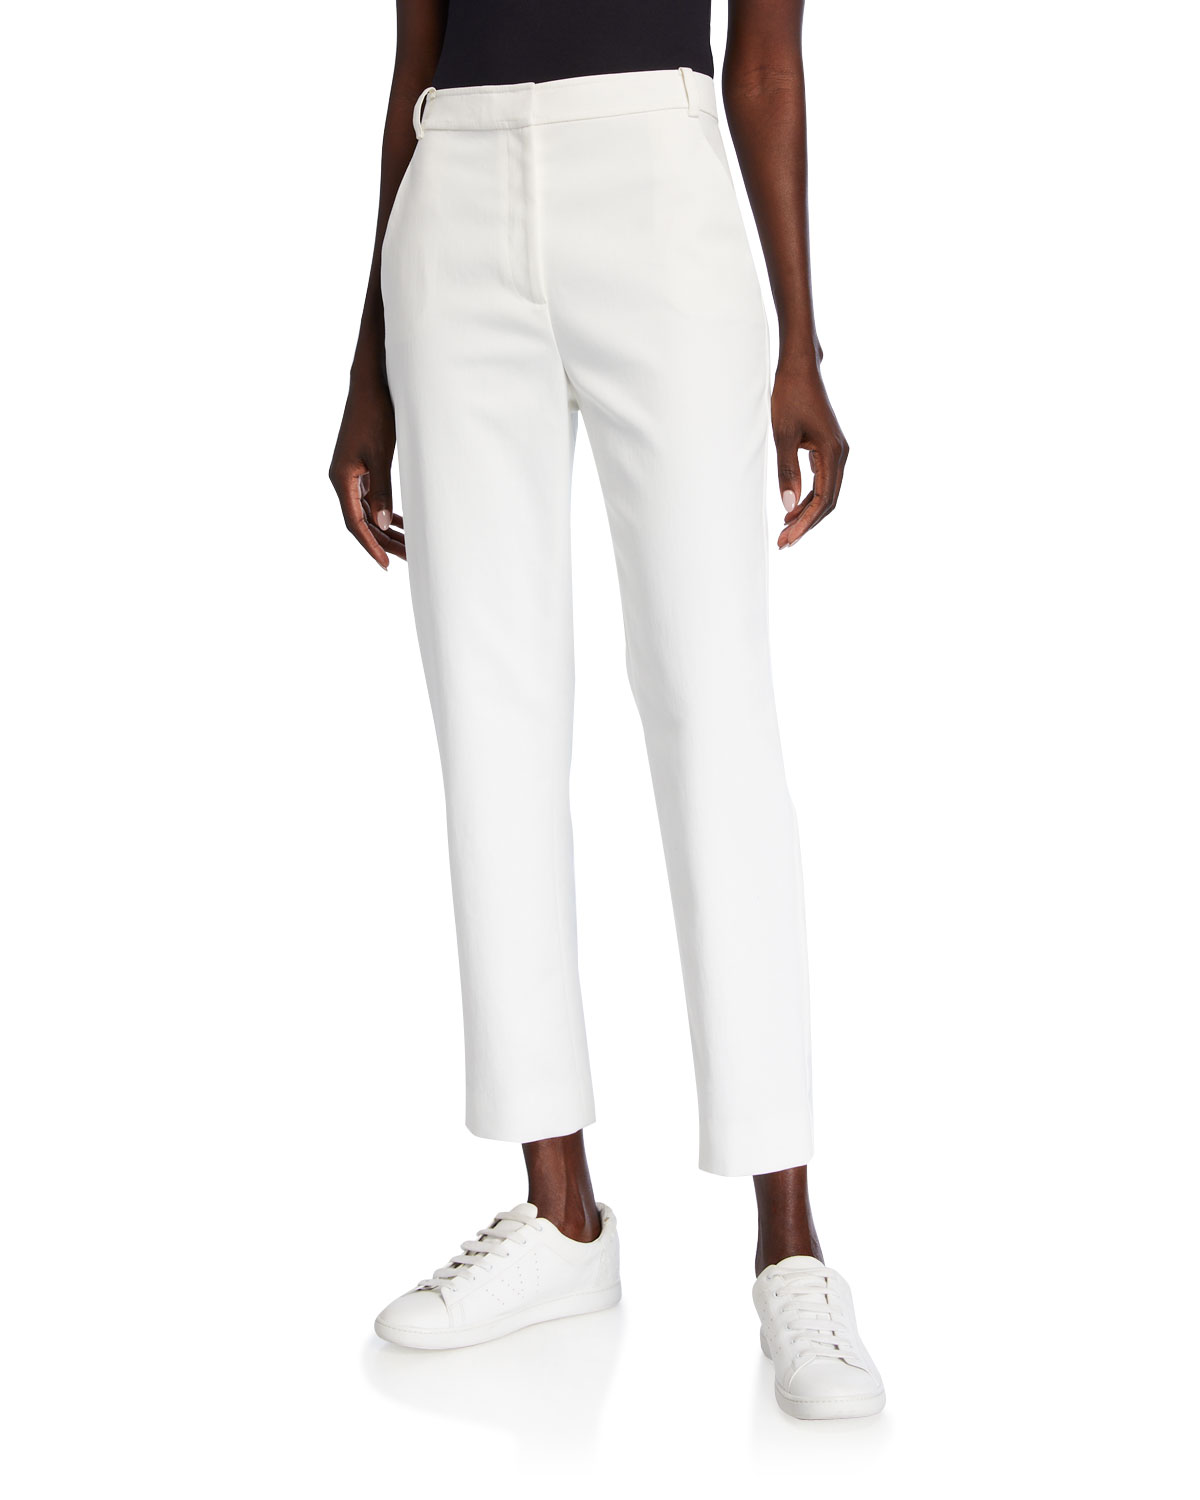 St. John Pants STRETCH WASH CANVAS TAPERED ANKLE PANTS WITH POCKETS